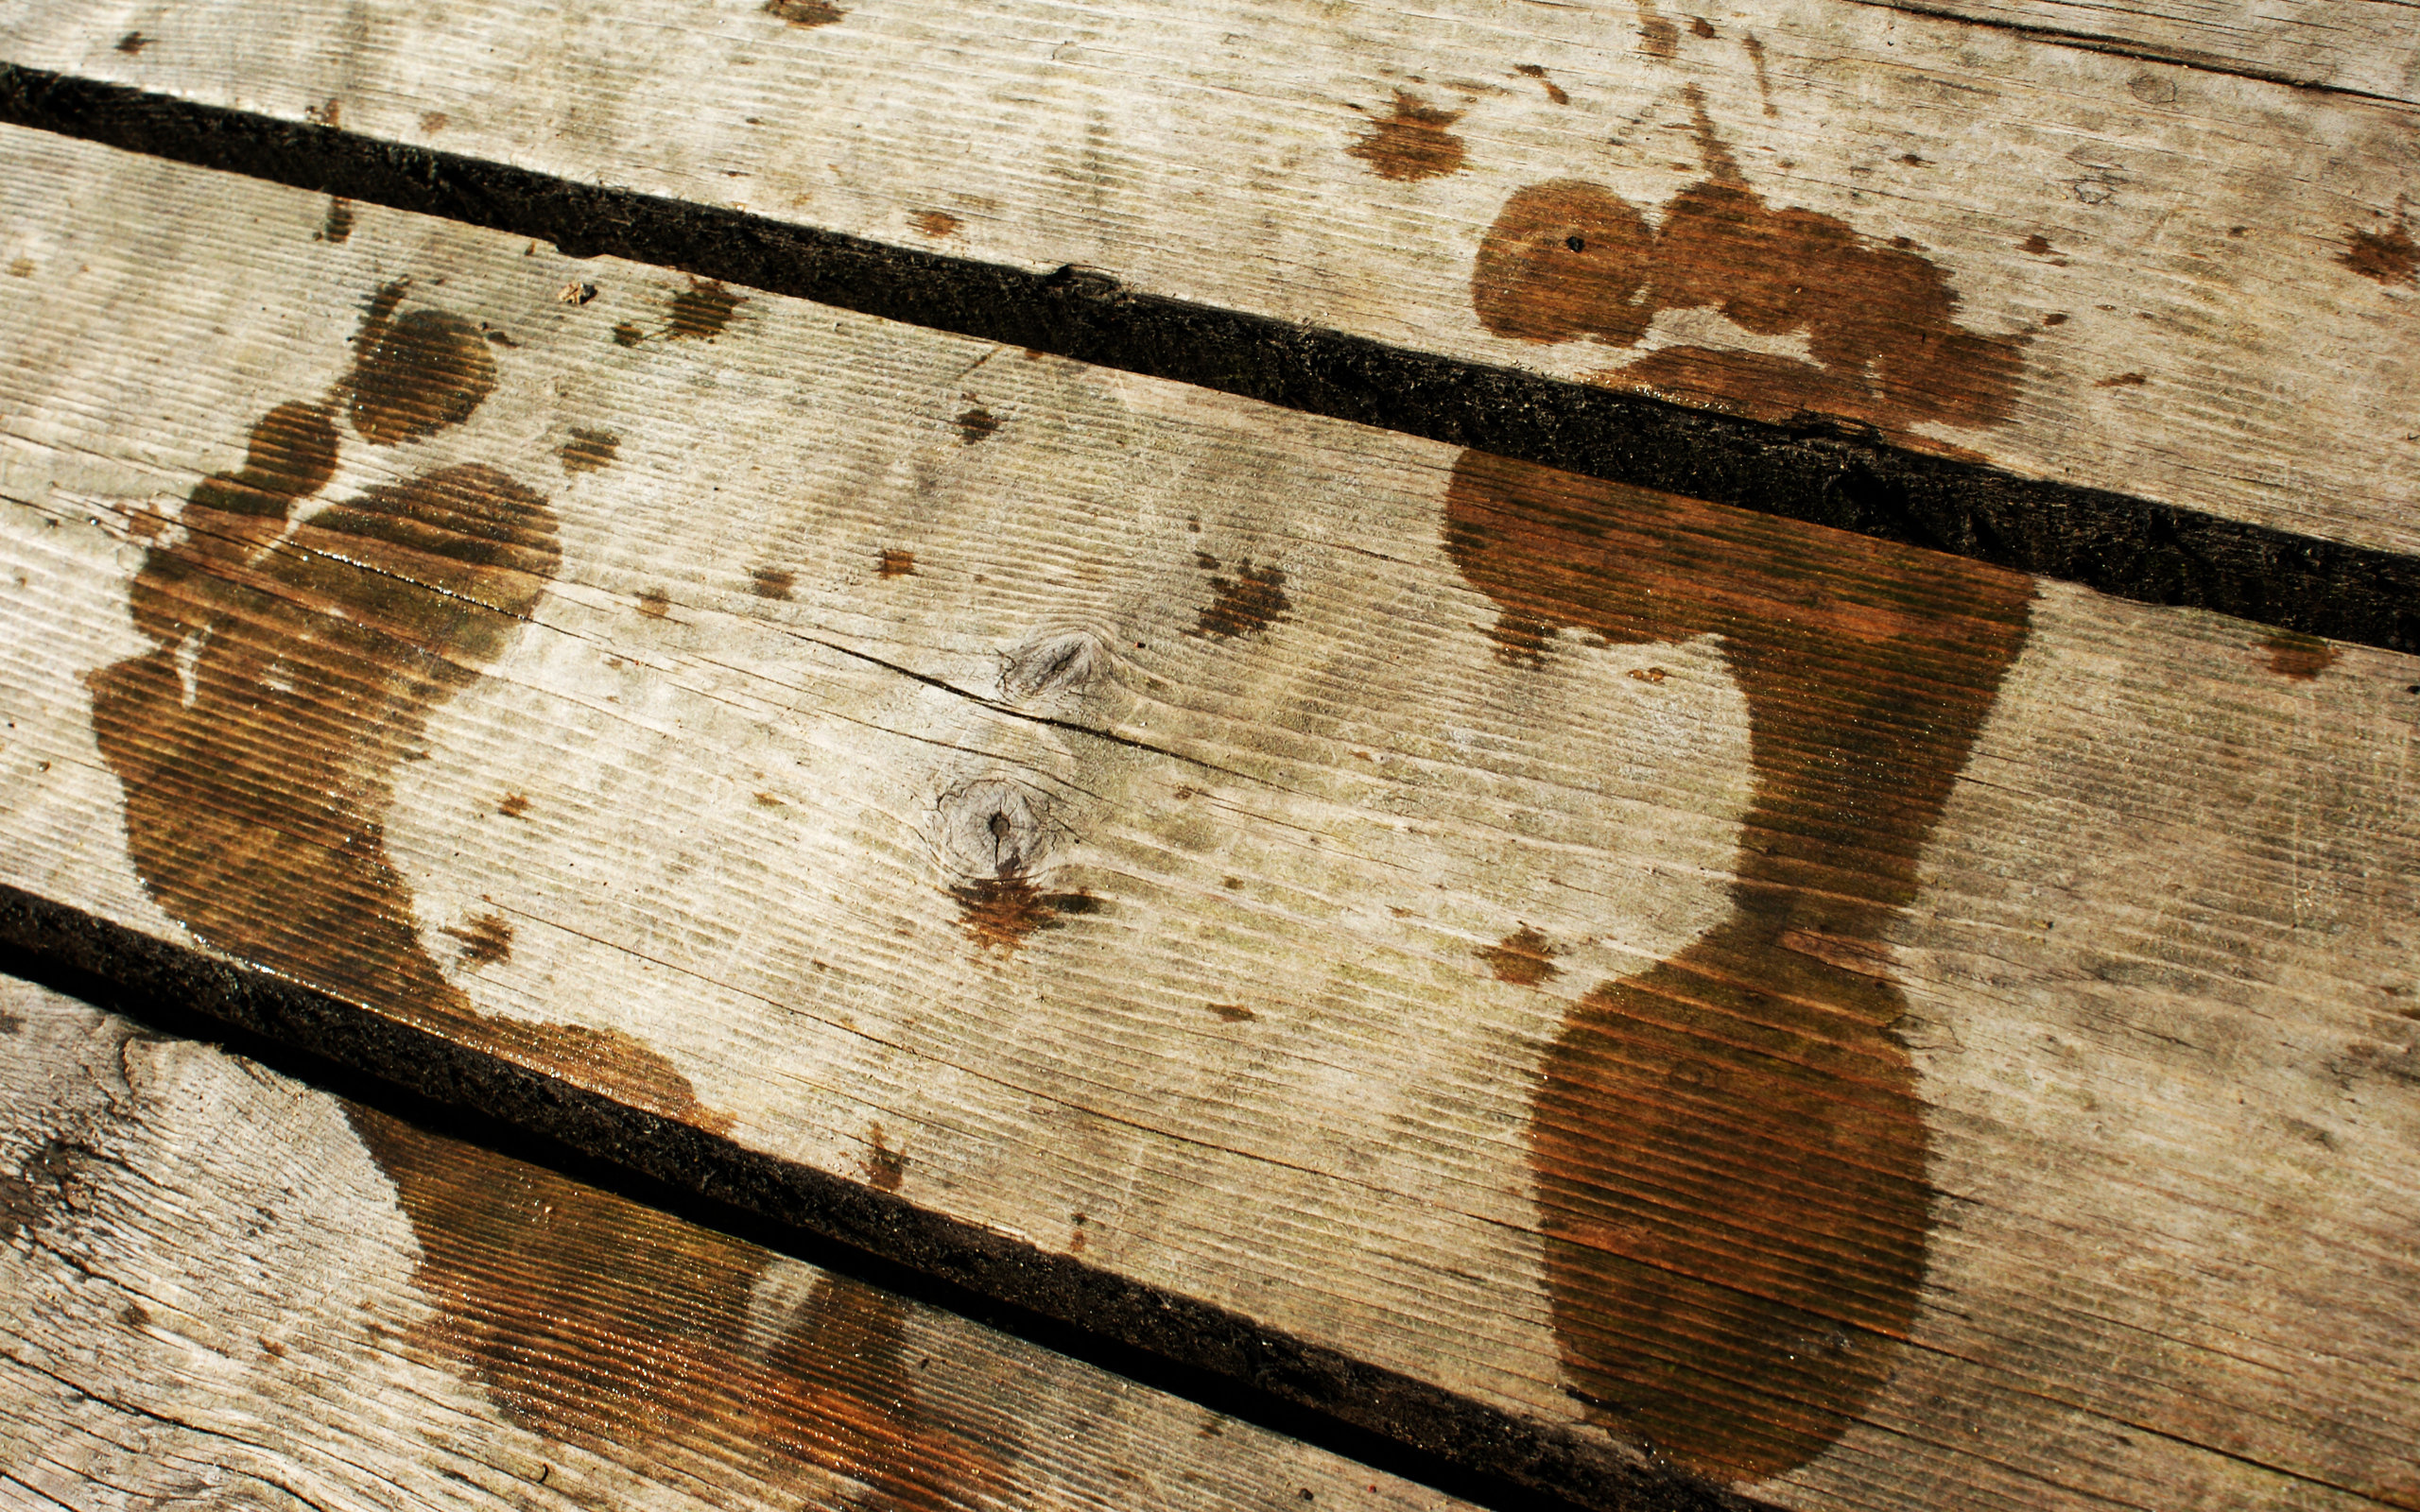 footprints on a plank wallpaper background 2560x1600